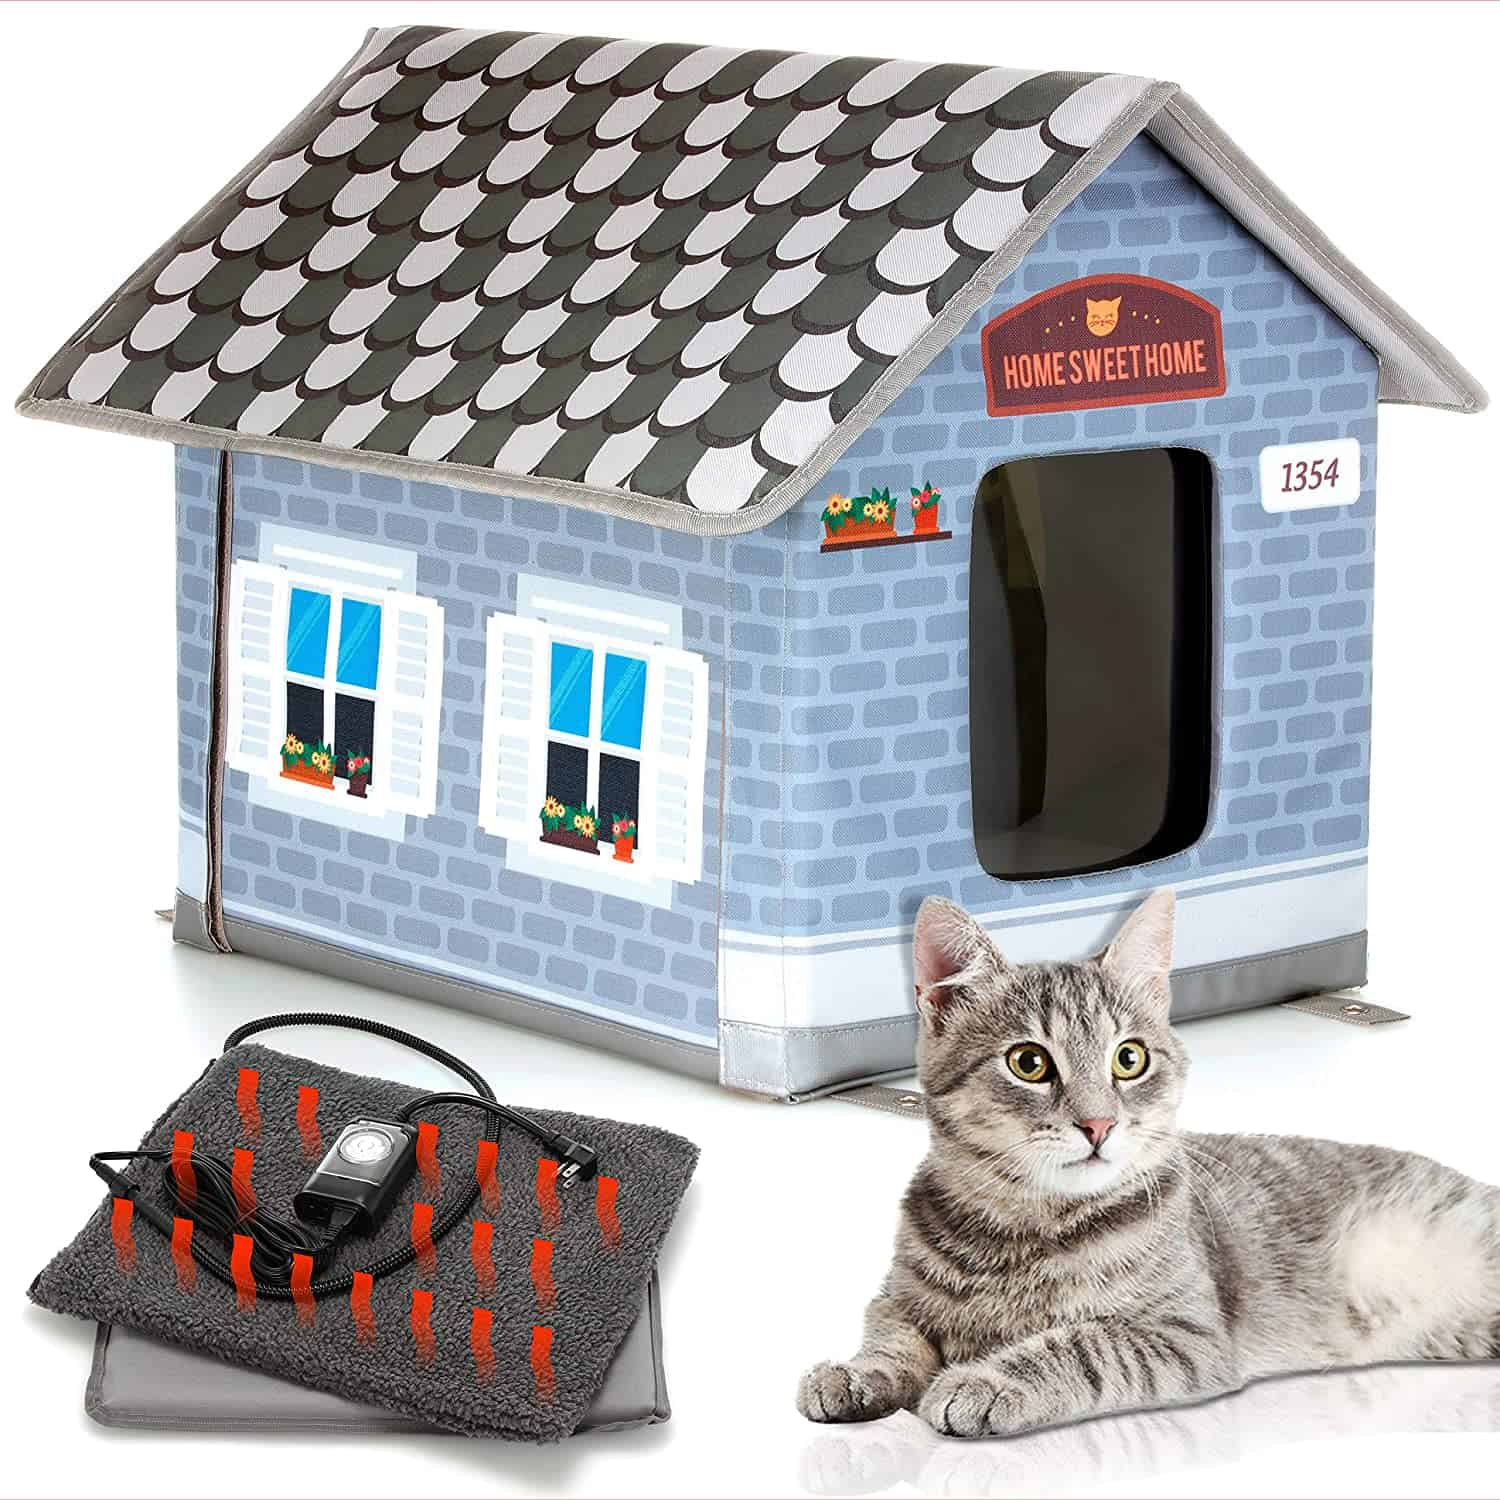 Best Outdoor Cat House for 2020 Plus Reviews of Other Top Picks 11